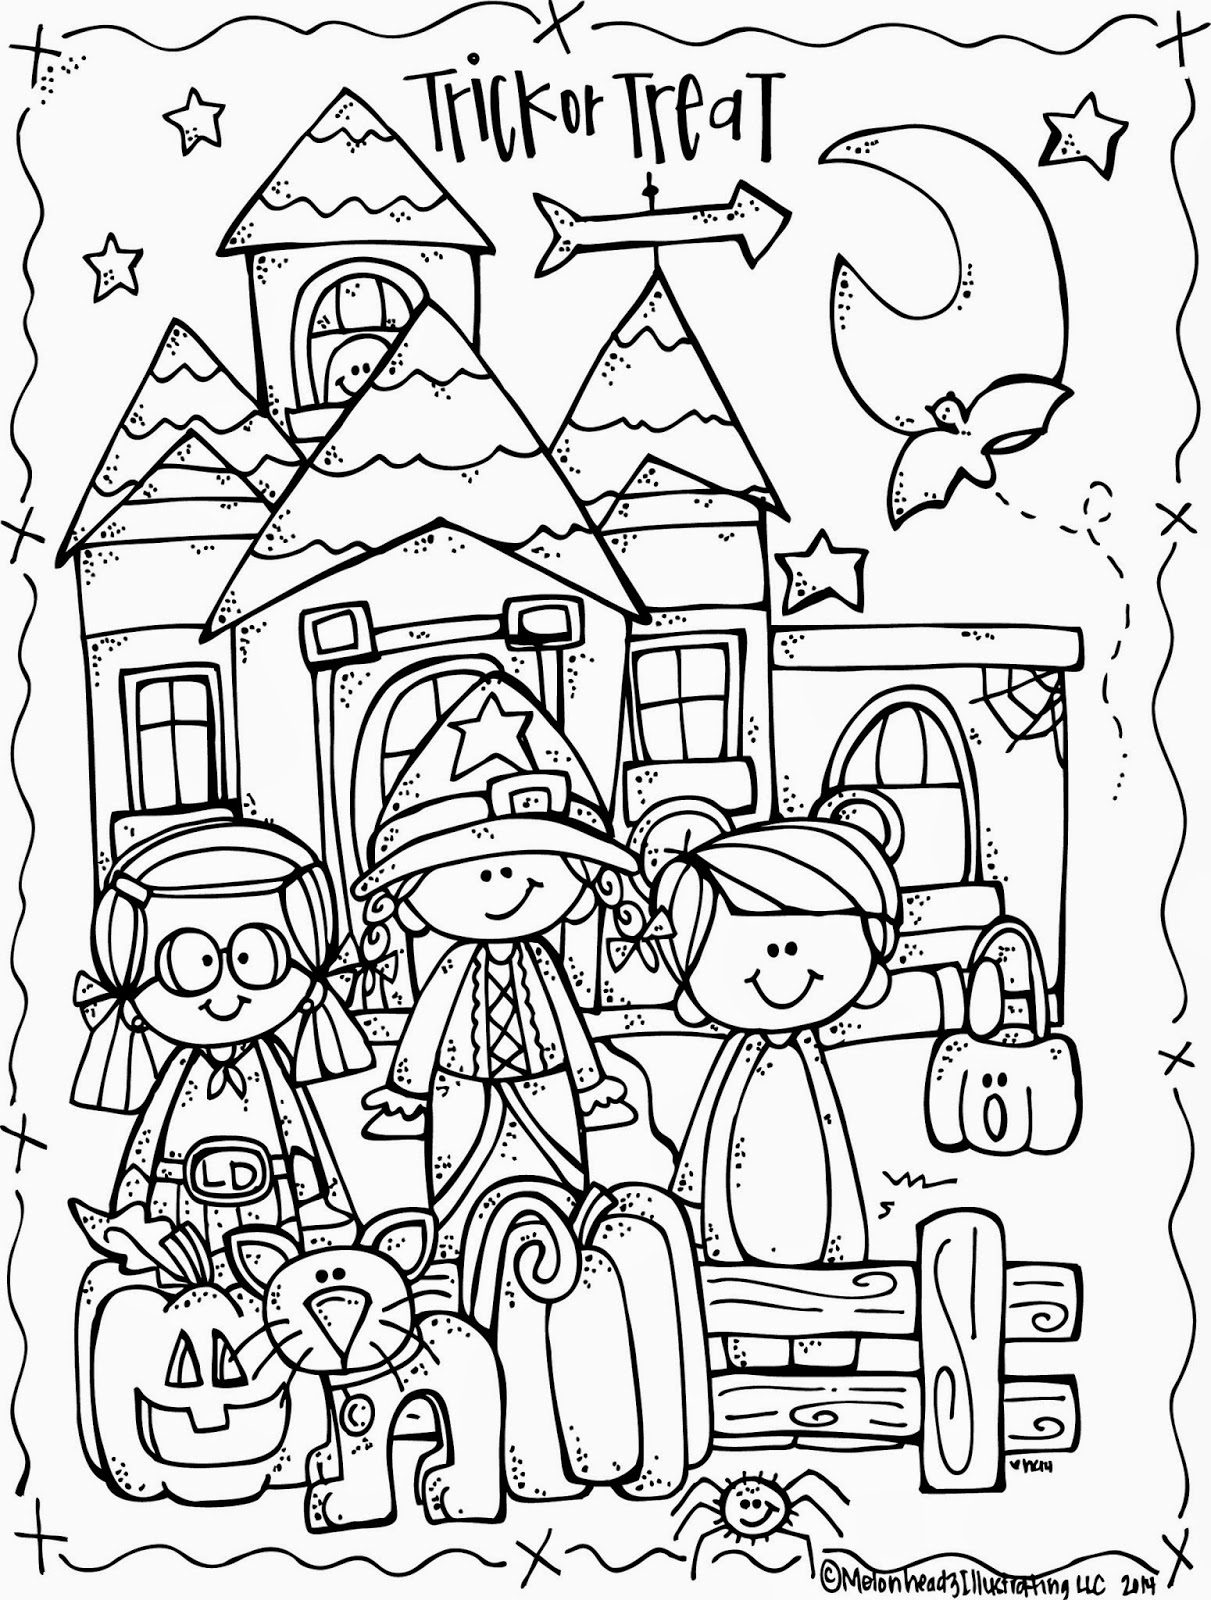 coloring sheets for halloween rookie saturday printable halloween coloring pages sheets coloring for halloween